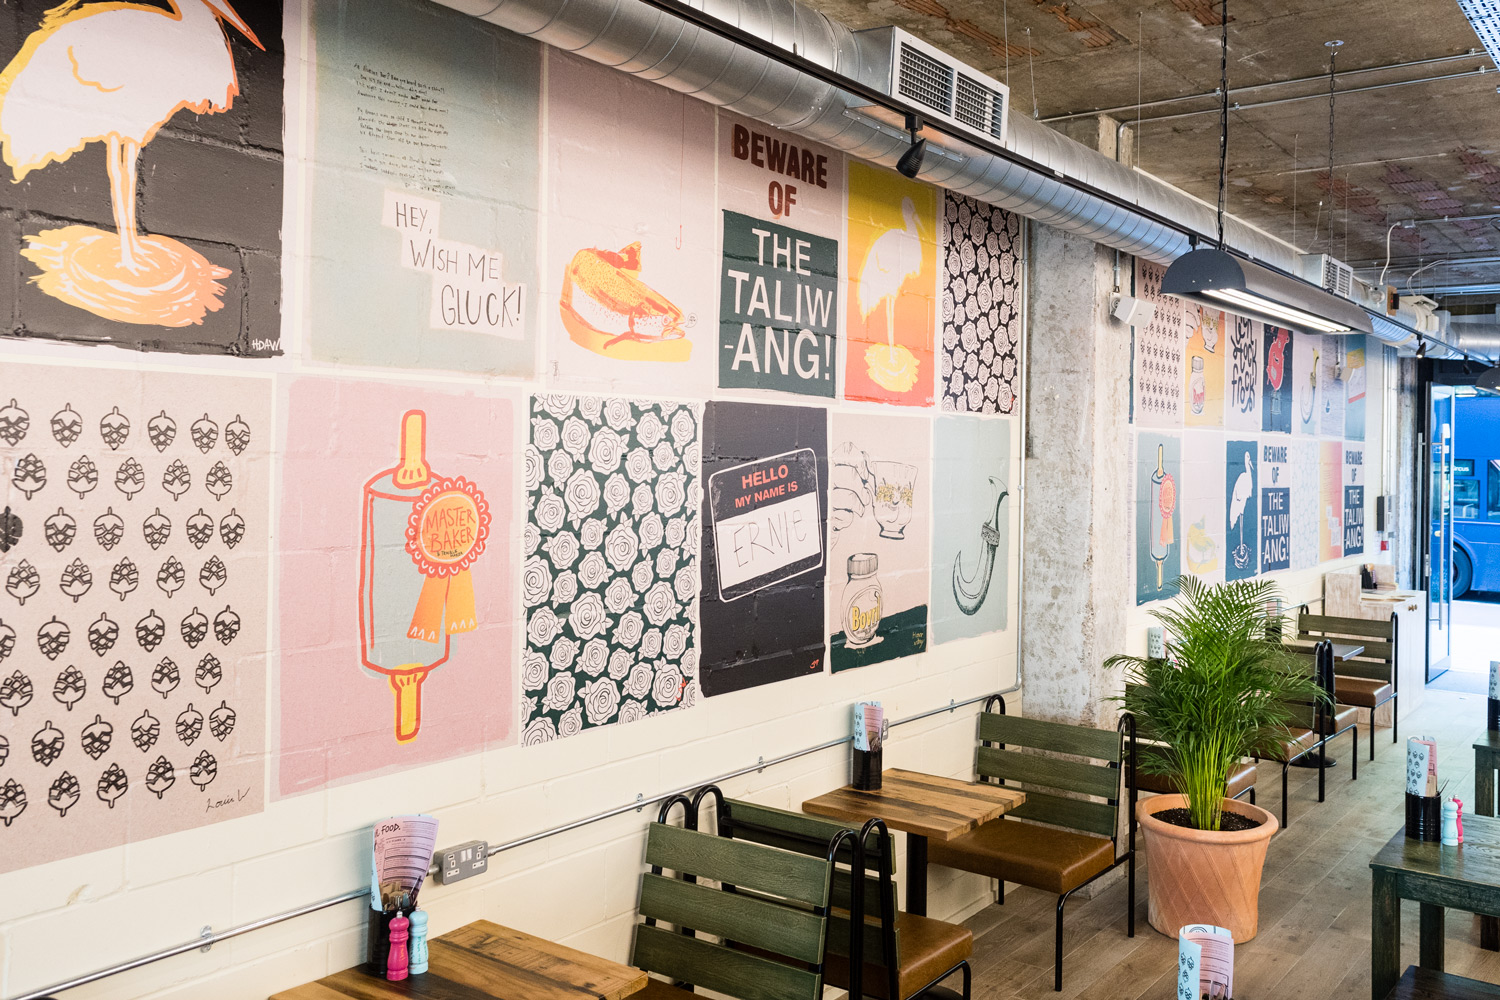 Interior wall art, illustration and branding for Flamboree by Saint Design